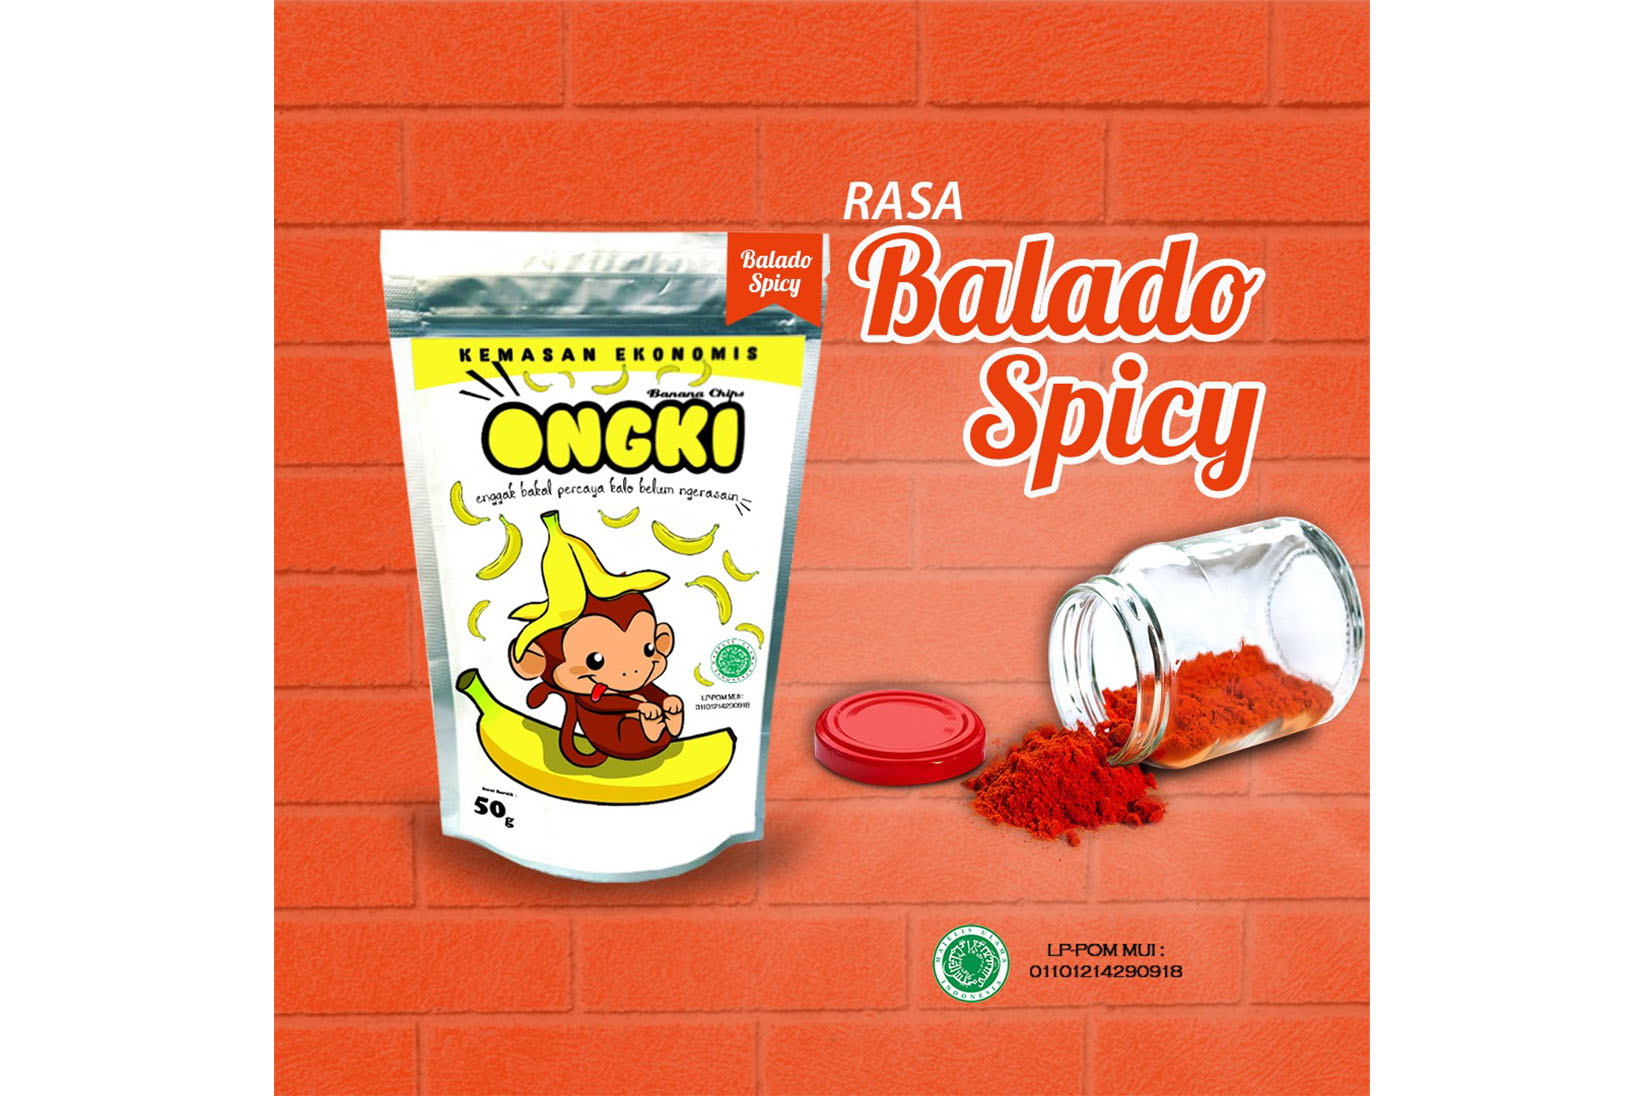 banana-chips-ongki-spicy-balado